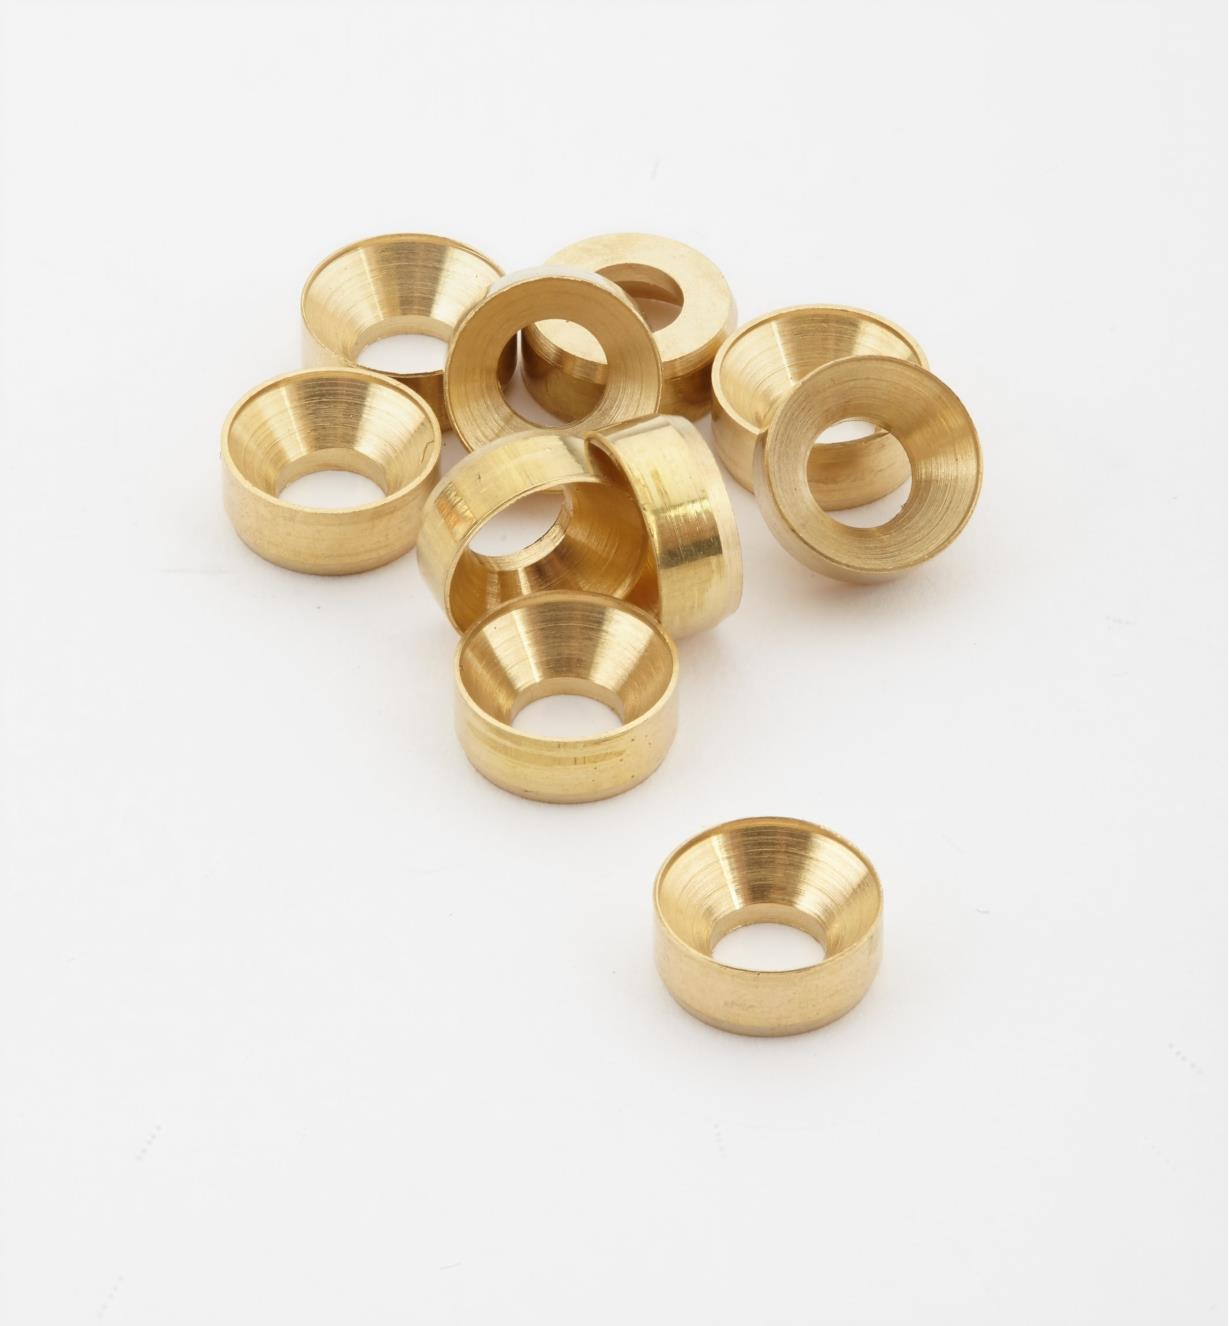 01K7001 - #6 Brass Washers, pkg. of 10